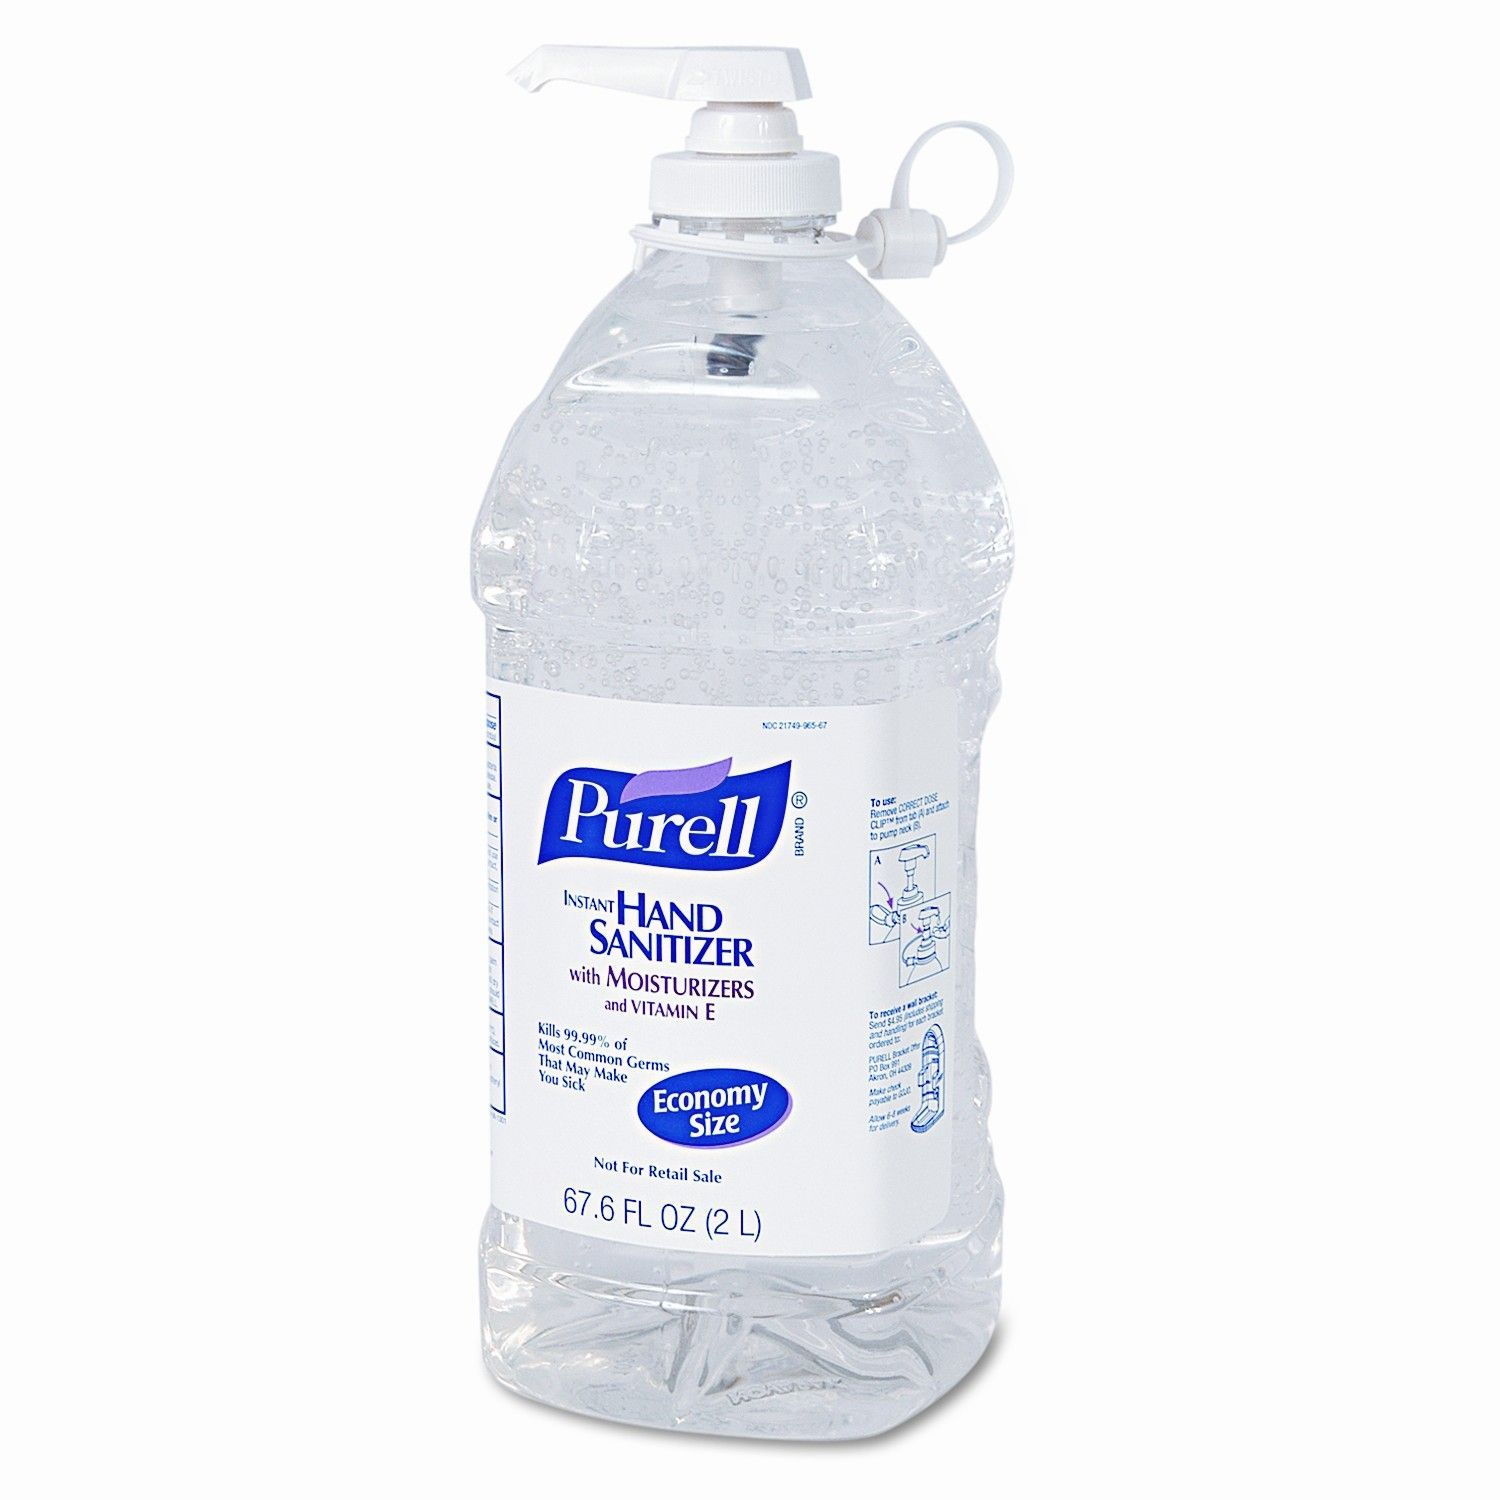 Purell Hand Sanitizer Bath And Body Care Disney World Vacation